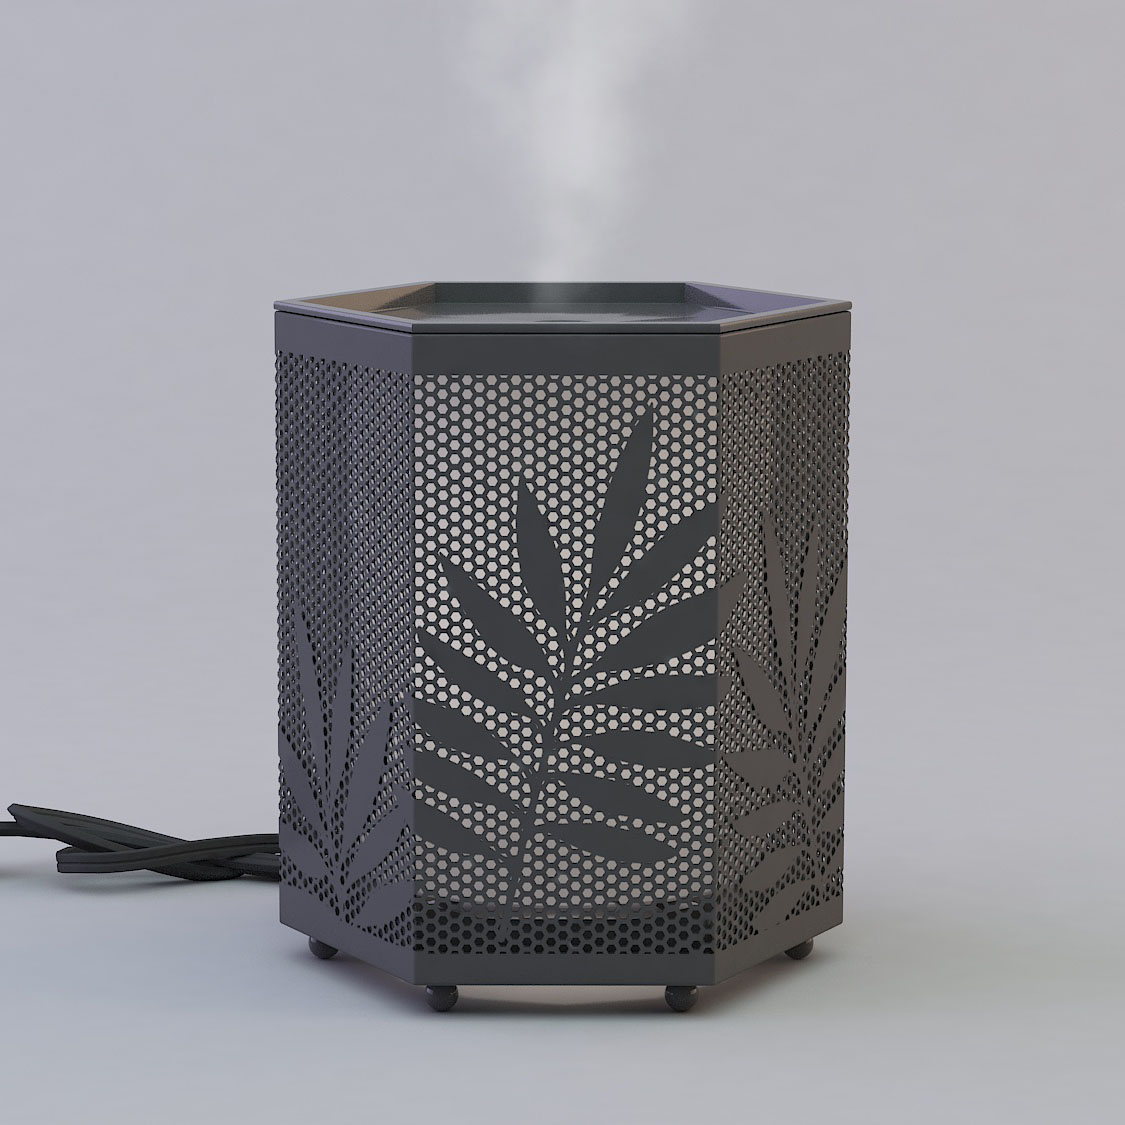 Metal Oil Diffuser Humidifier GLEA2114-Z-3